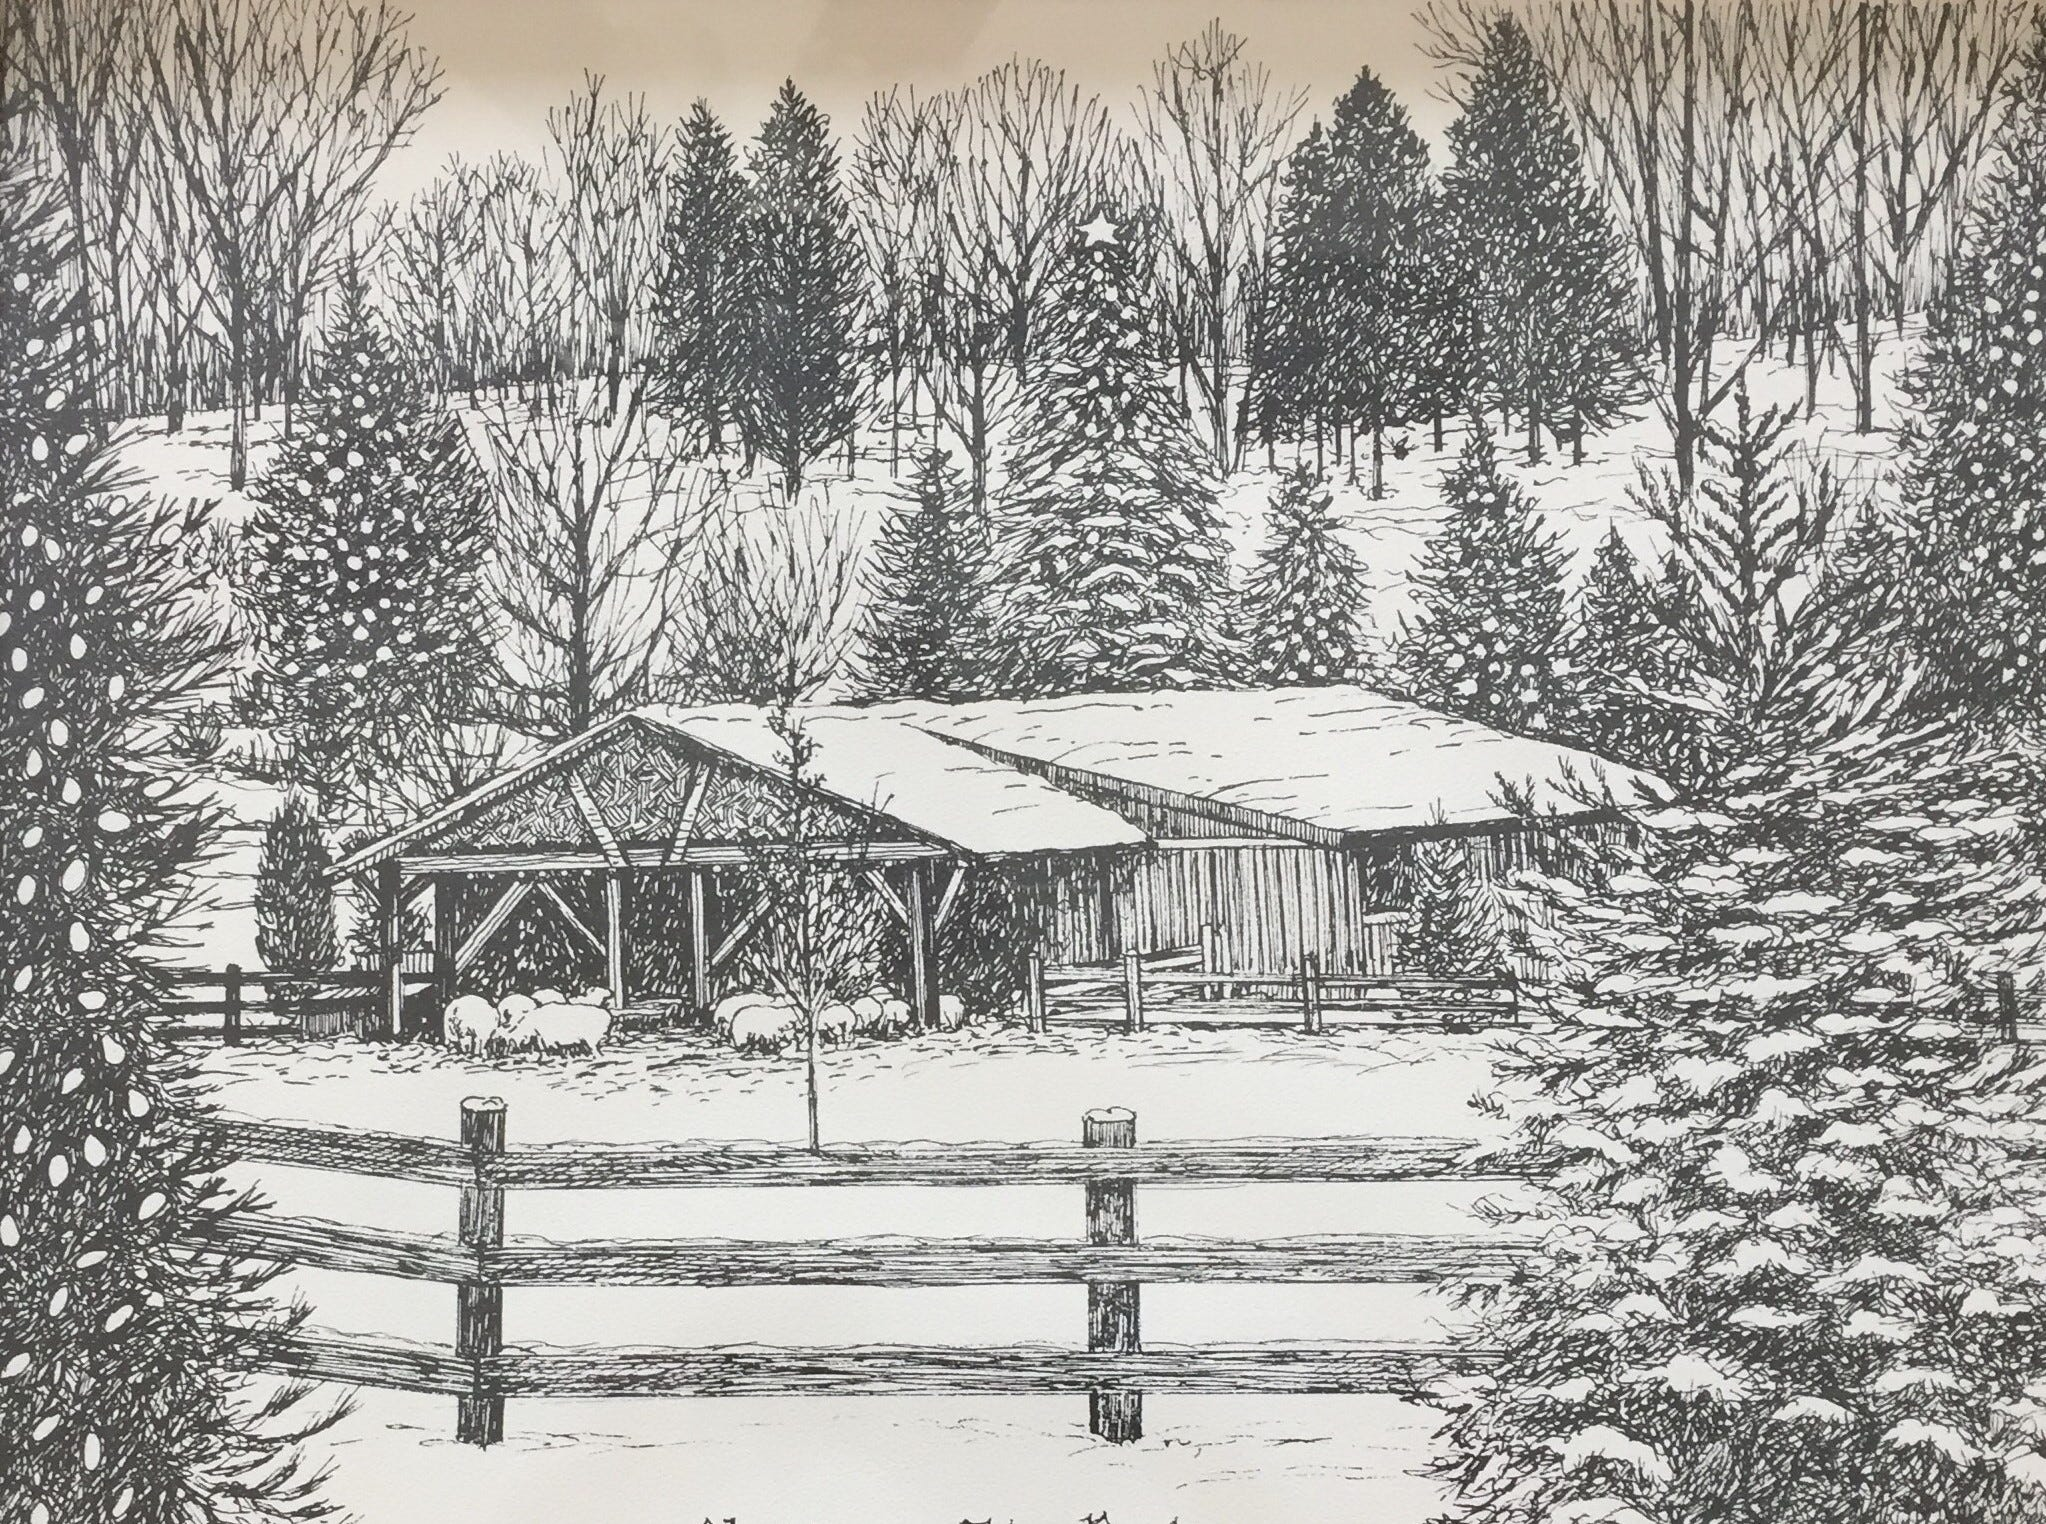 This is a print of Eden Park at Christmas, given during Christmas time by Thom Van Benschoten